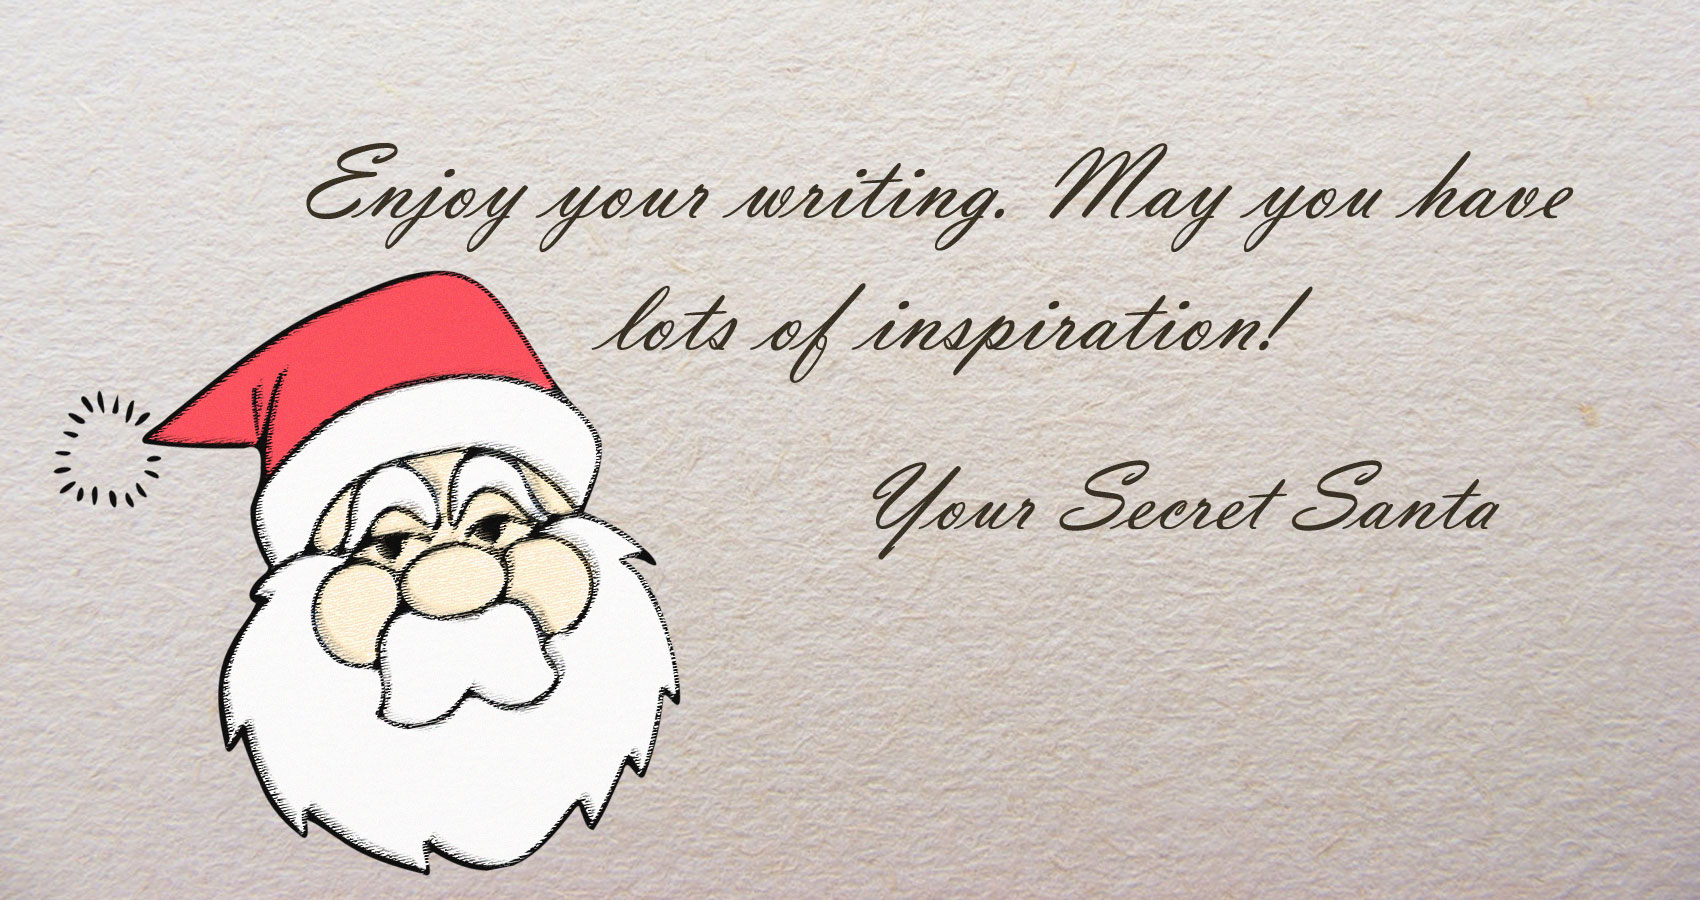 My Secret Santa written by Lorenzo Berardi at Spillwords.com